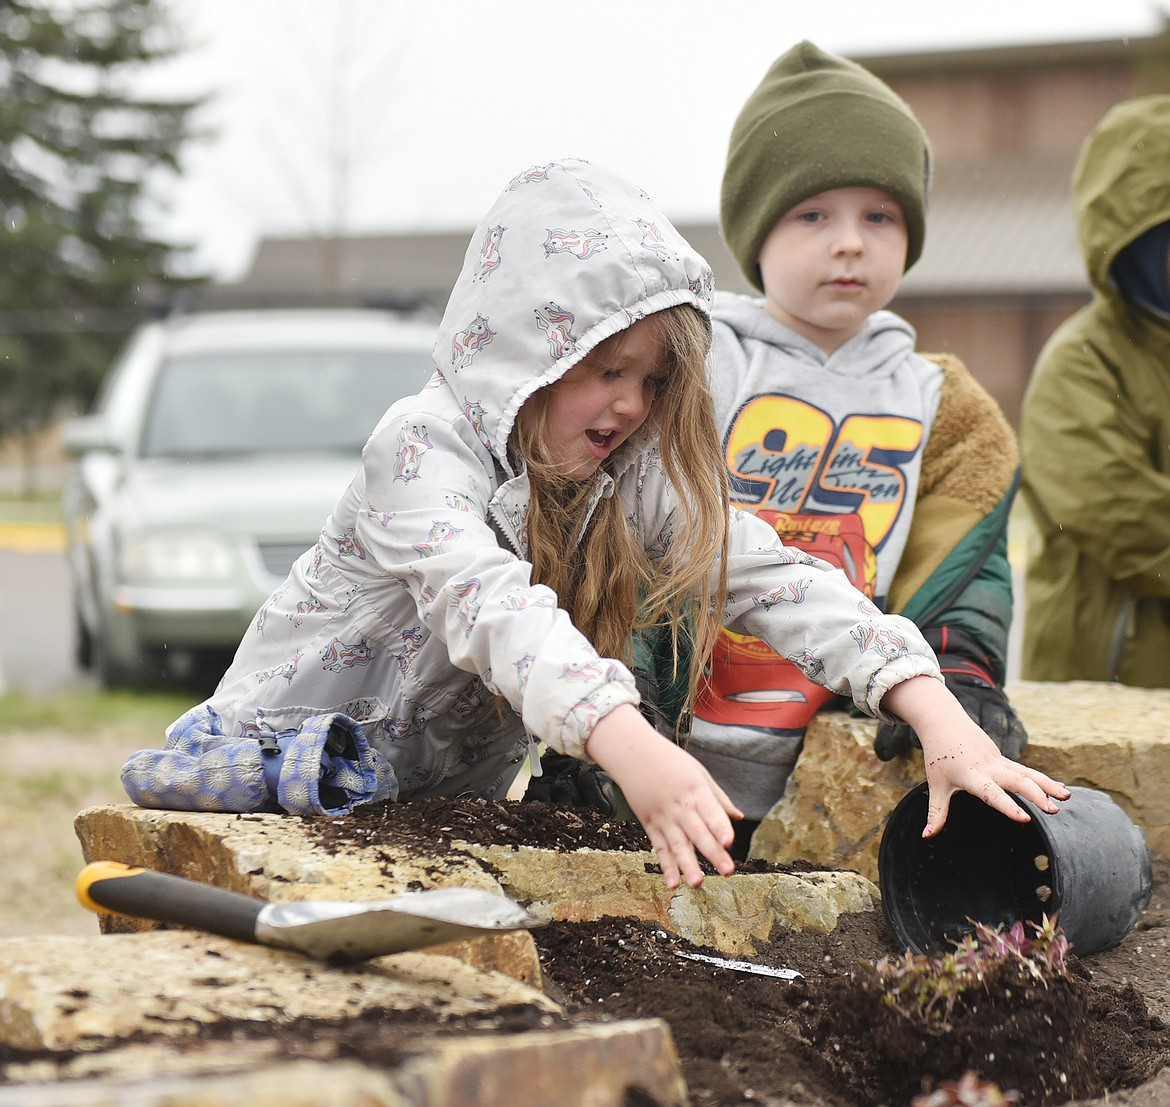 Rylan Frager drops a plant into its spot in the new pollinator garden, while Axel Neville watches. Students from Children's House Montessori School assisted in planting the garden Thursday morning for Earth Day. (Heidi Desch/Whitefish Pilot)